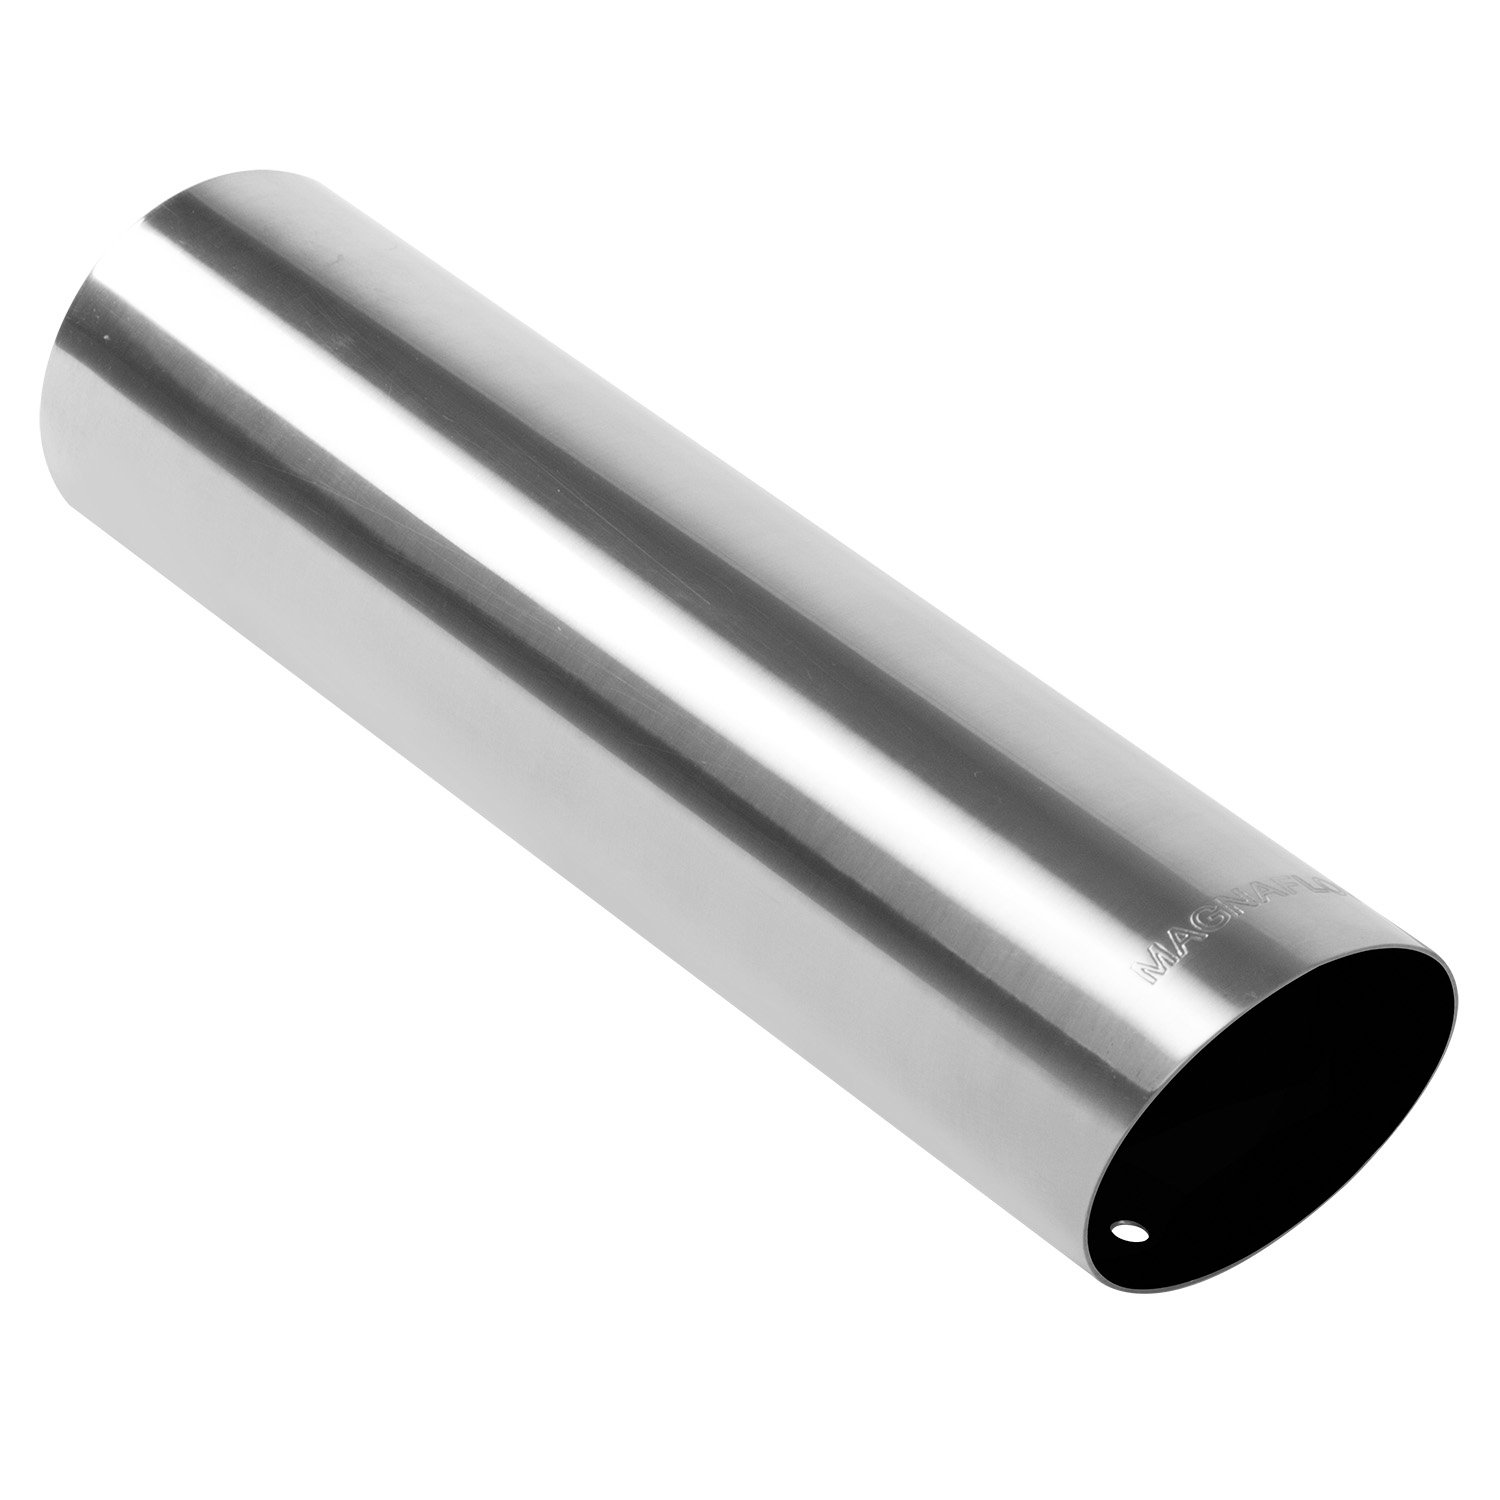 Magnaflow 35101 EXHAUST TAIL PIPE TIP